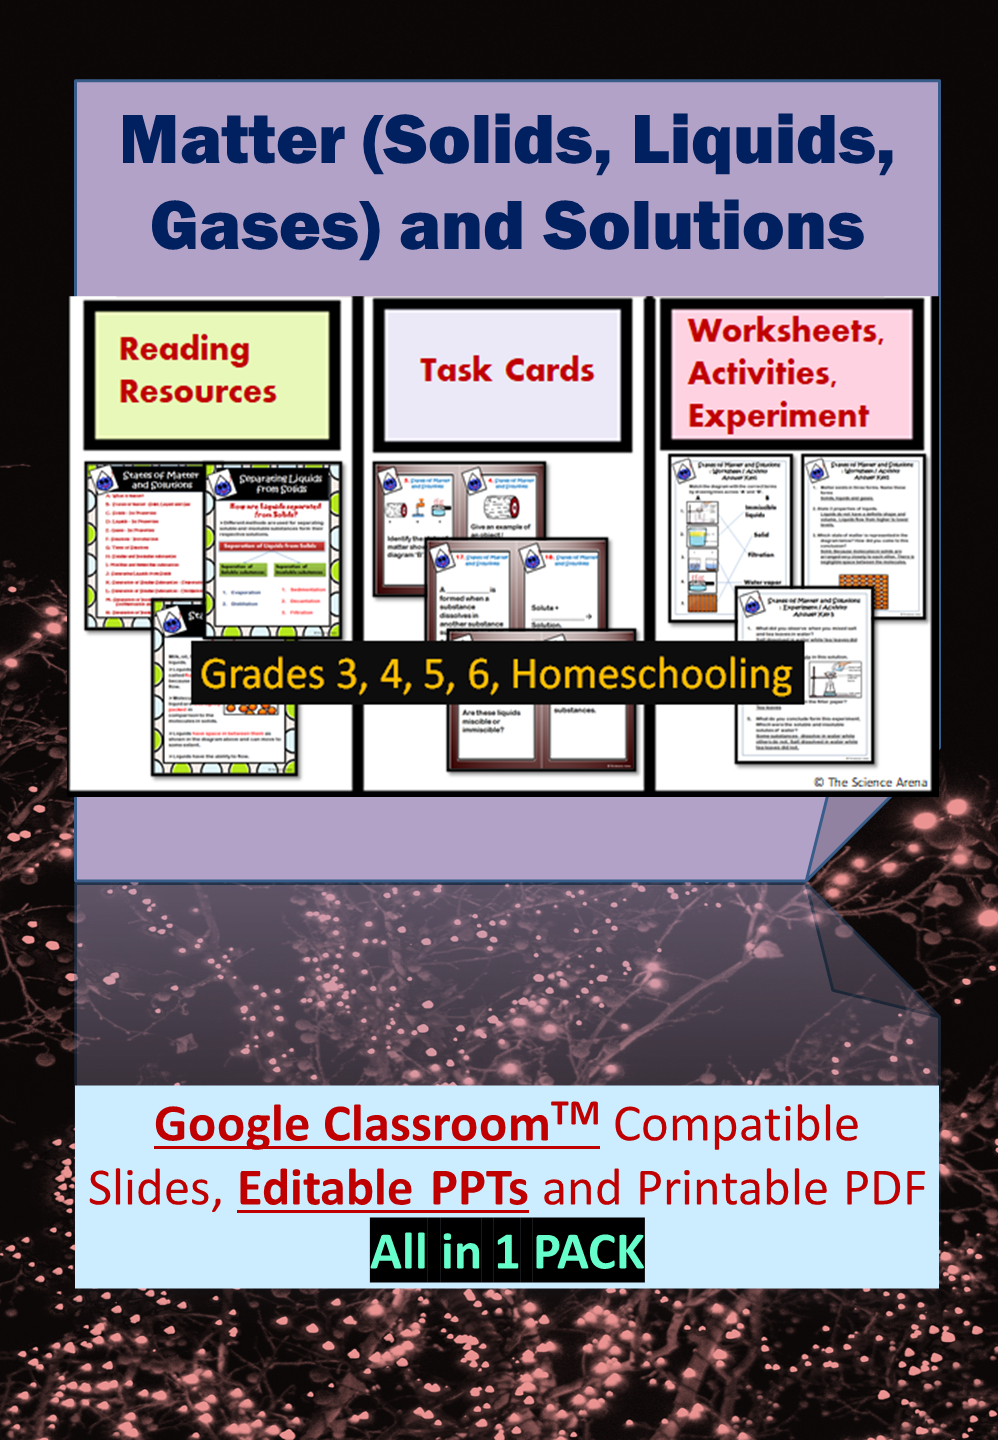 States Of Matter Their Properties And Solutions Teaching Resources For Grades 3 4 Science Teaching Resources Teachers Pay Teachers Seller Teaching Resources [ 1440 x 998 Pixel ]